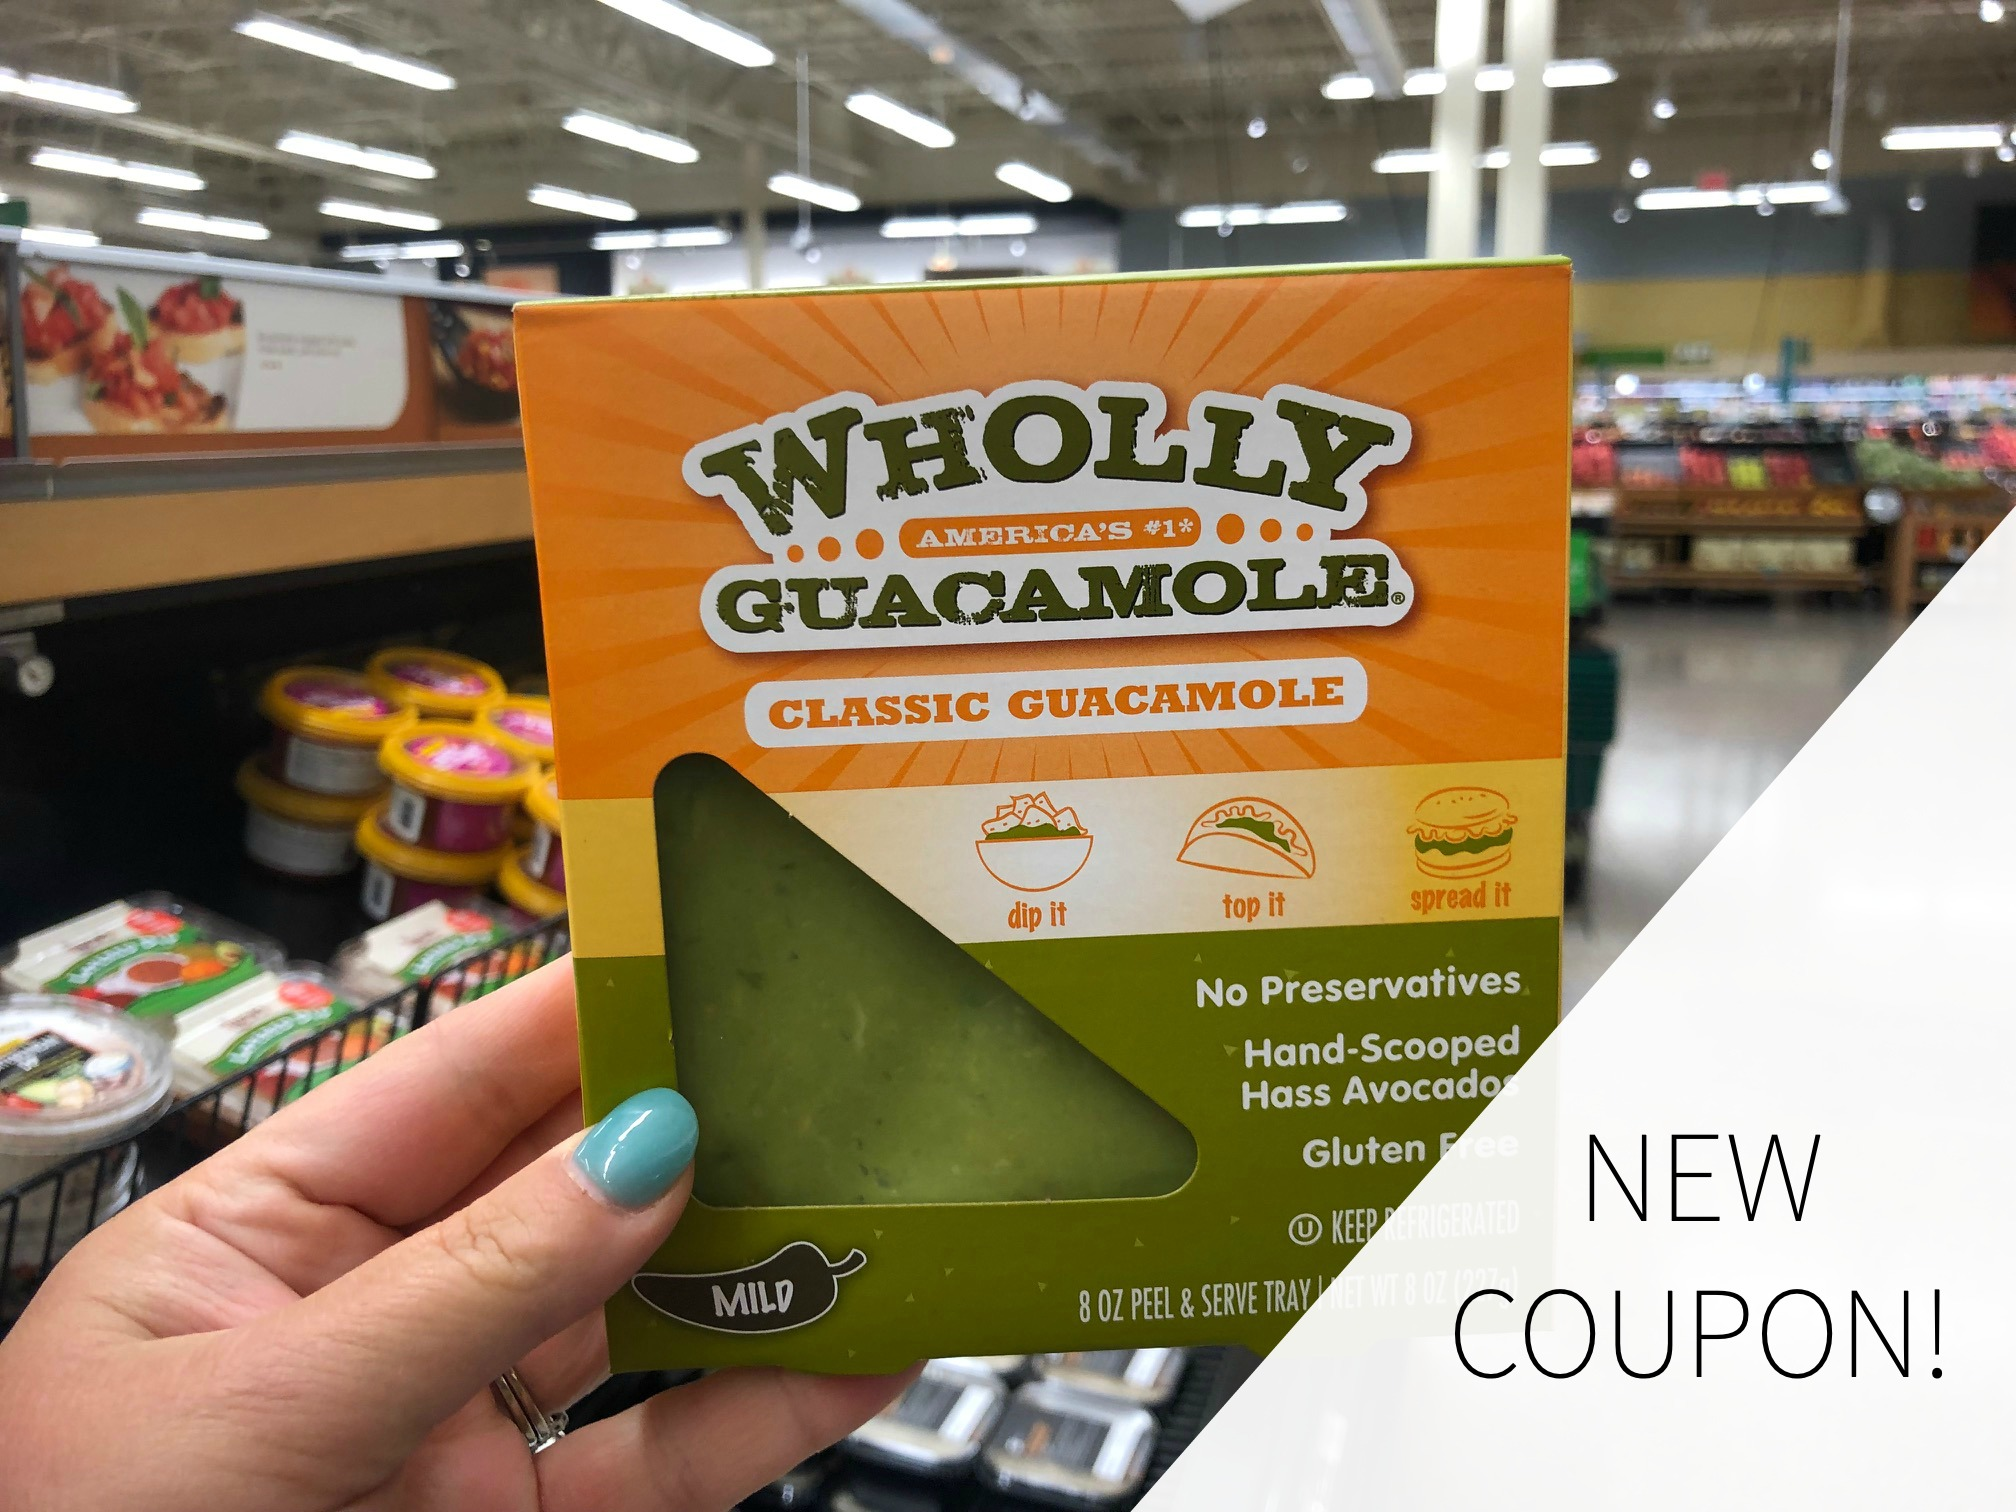 New Wholly Guacamole Coupon To Print on I Heart Publix